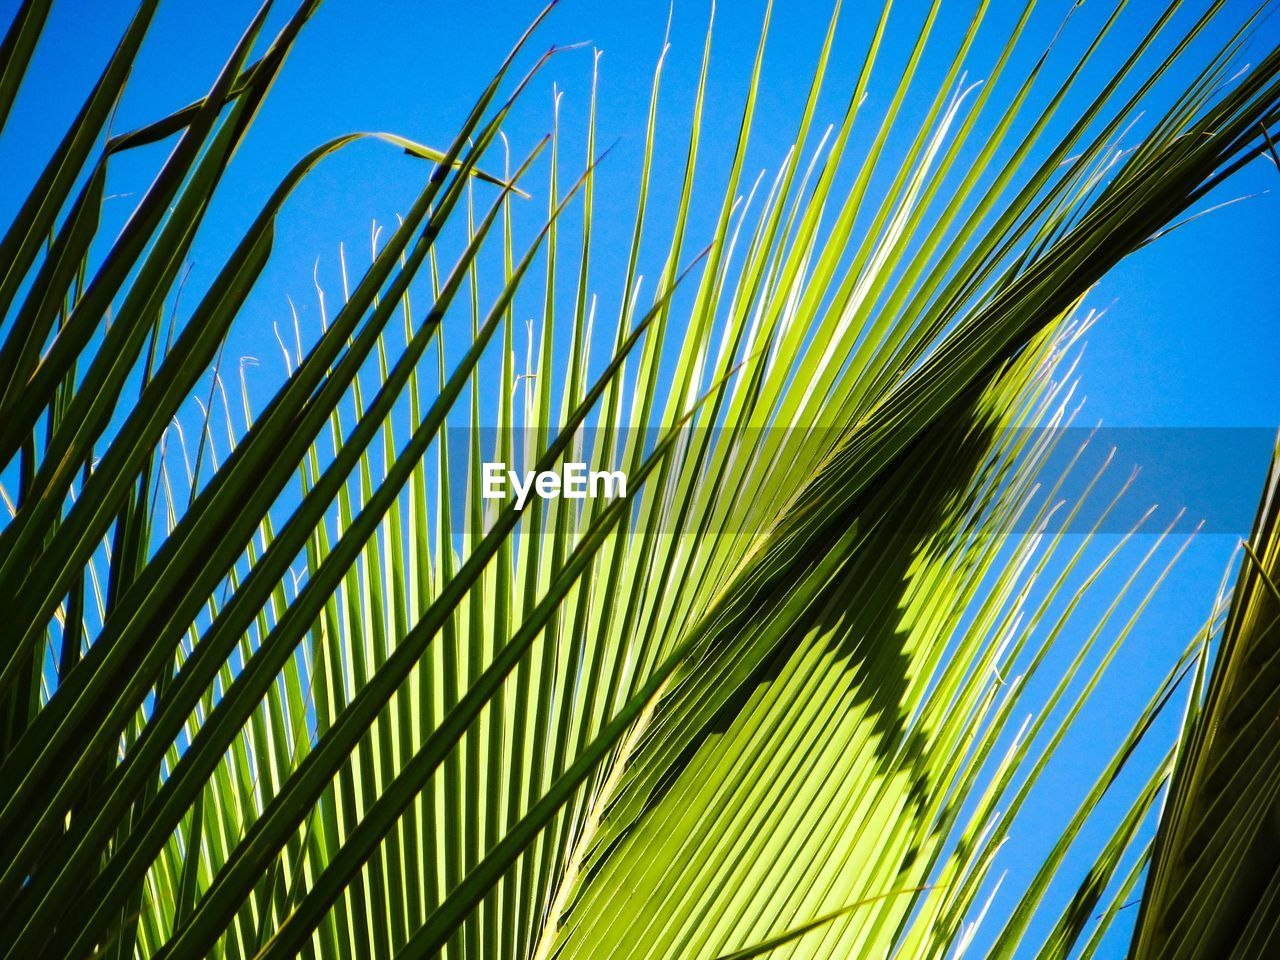 growth, palm tree, palm leaf, leaf, plant, green color, sky, nature, plant part, low angle view, tree, beauty in nature, no people, tropical climate, pattern, day, close-up, sunlight, blue, clear sky, outdoors